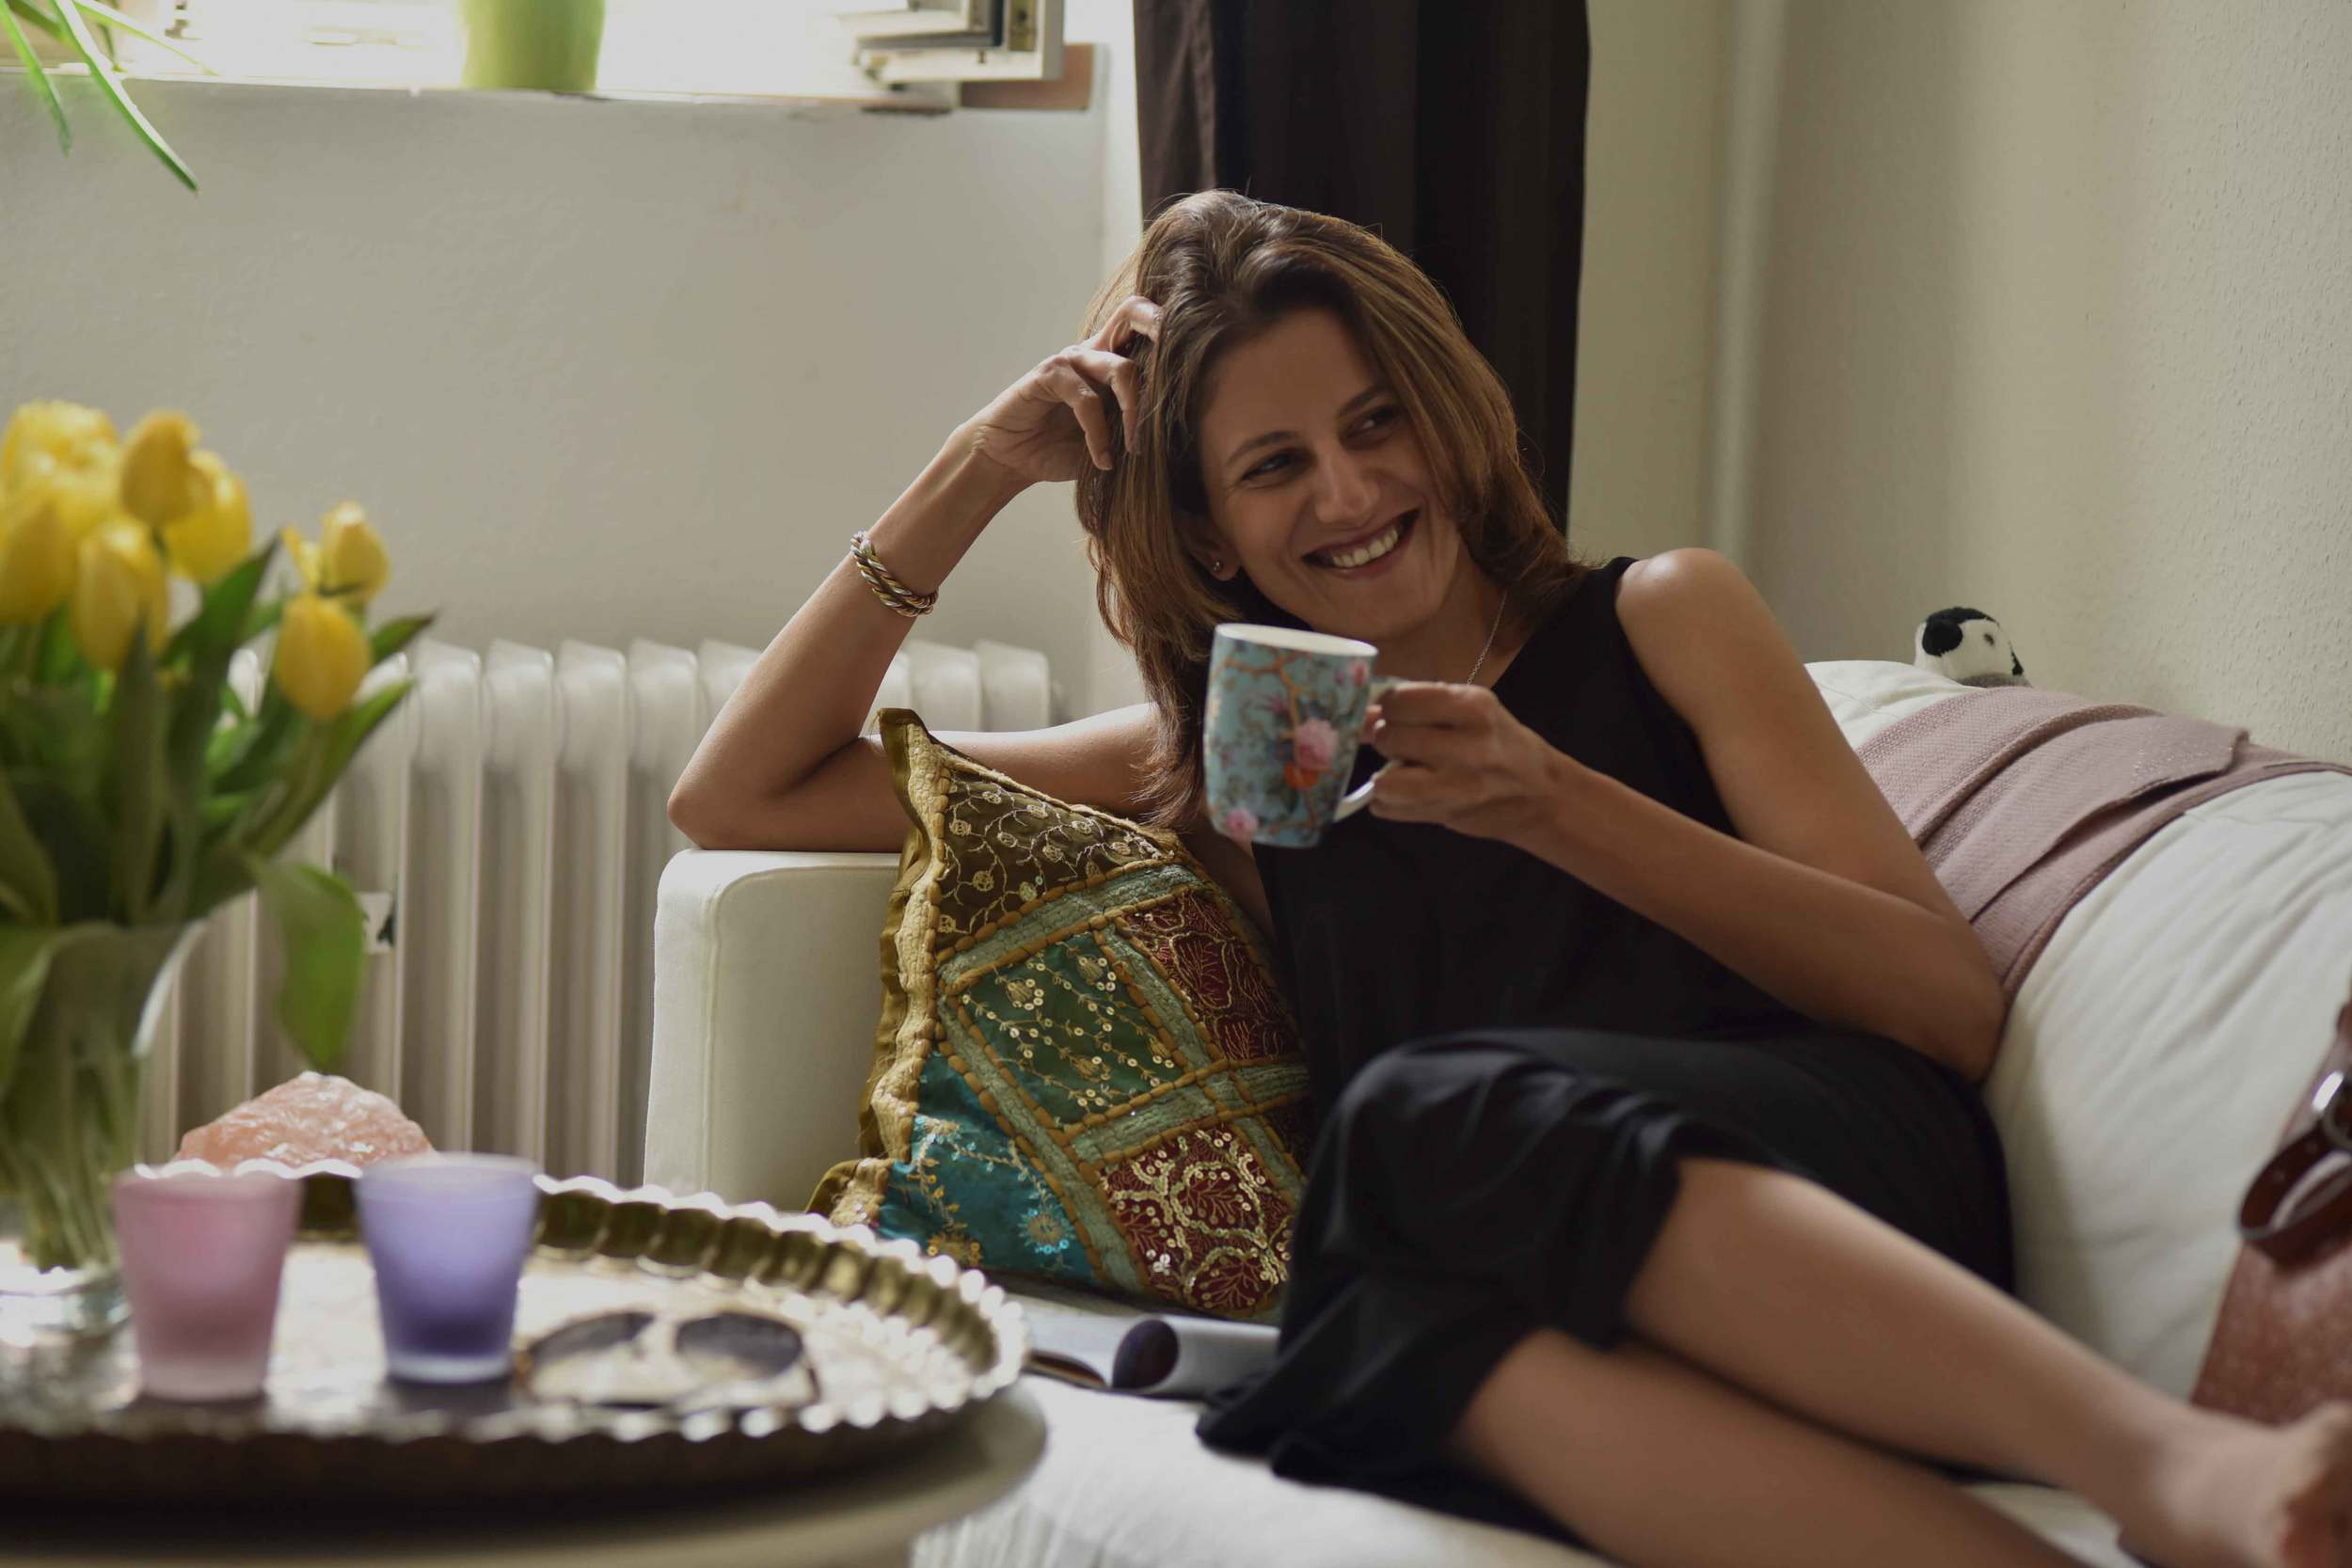 Waking up to a cup of coffee in my Eileen Fisher black tank dress in viscose jersey, little black dress. Image©sourcingstyle.com, Photo: Nicola Nolting.